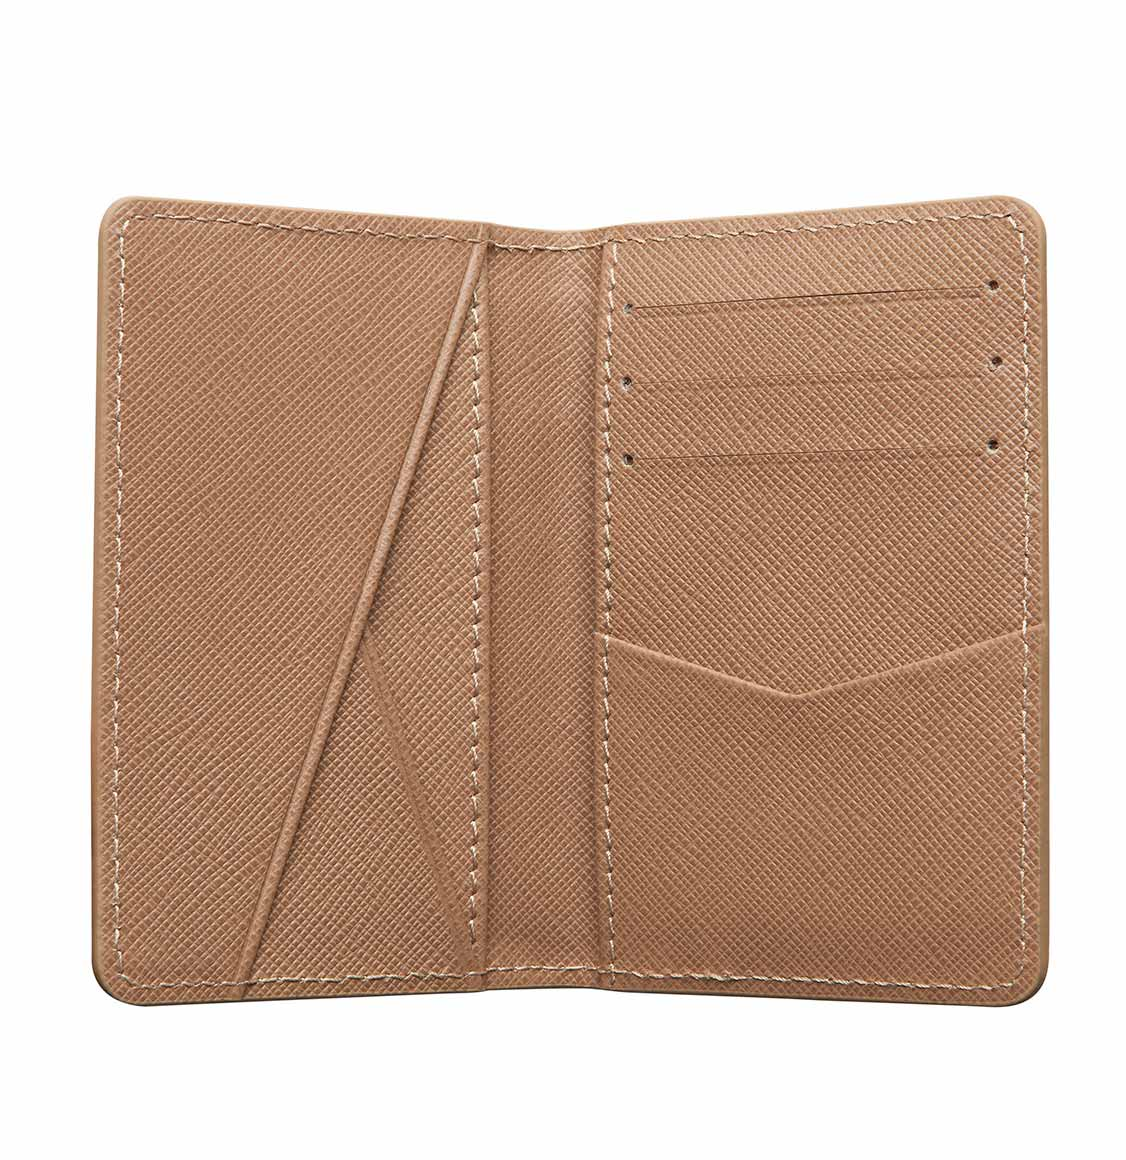 The Project Garments Cardholder in Beige Alligator Leather